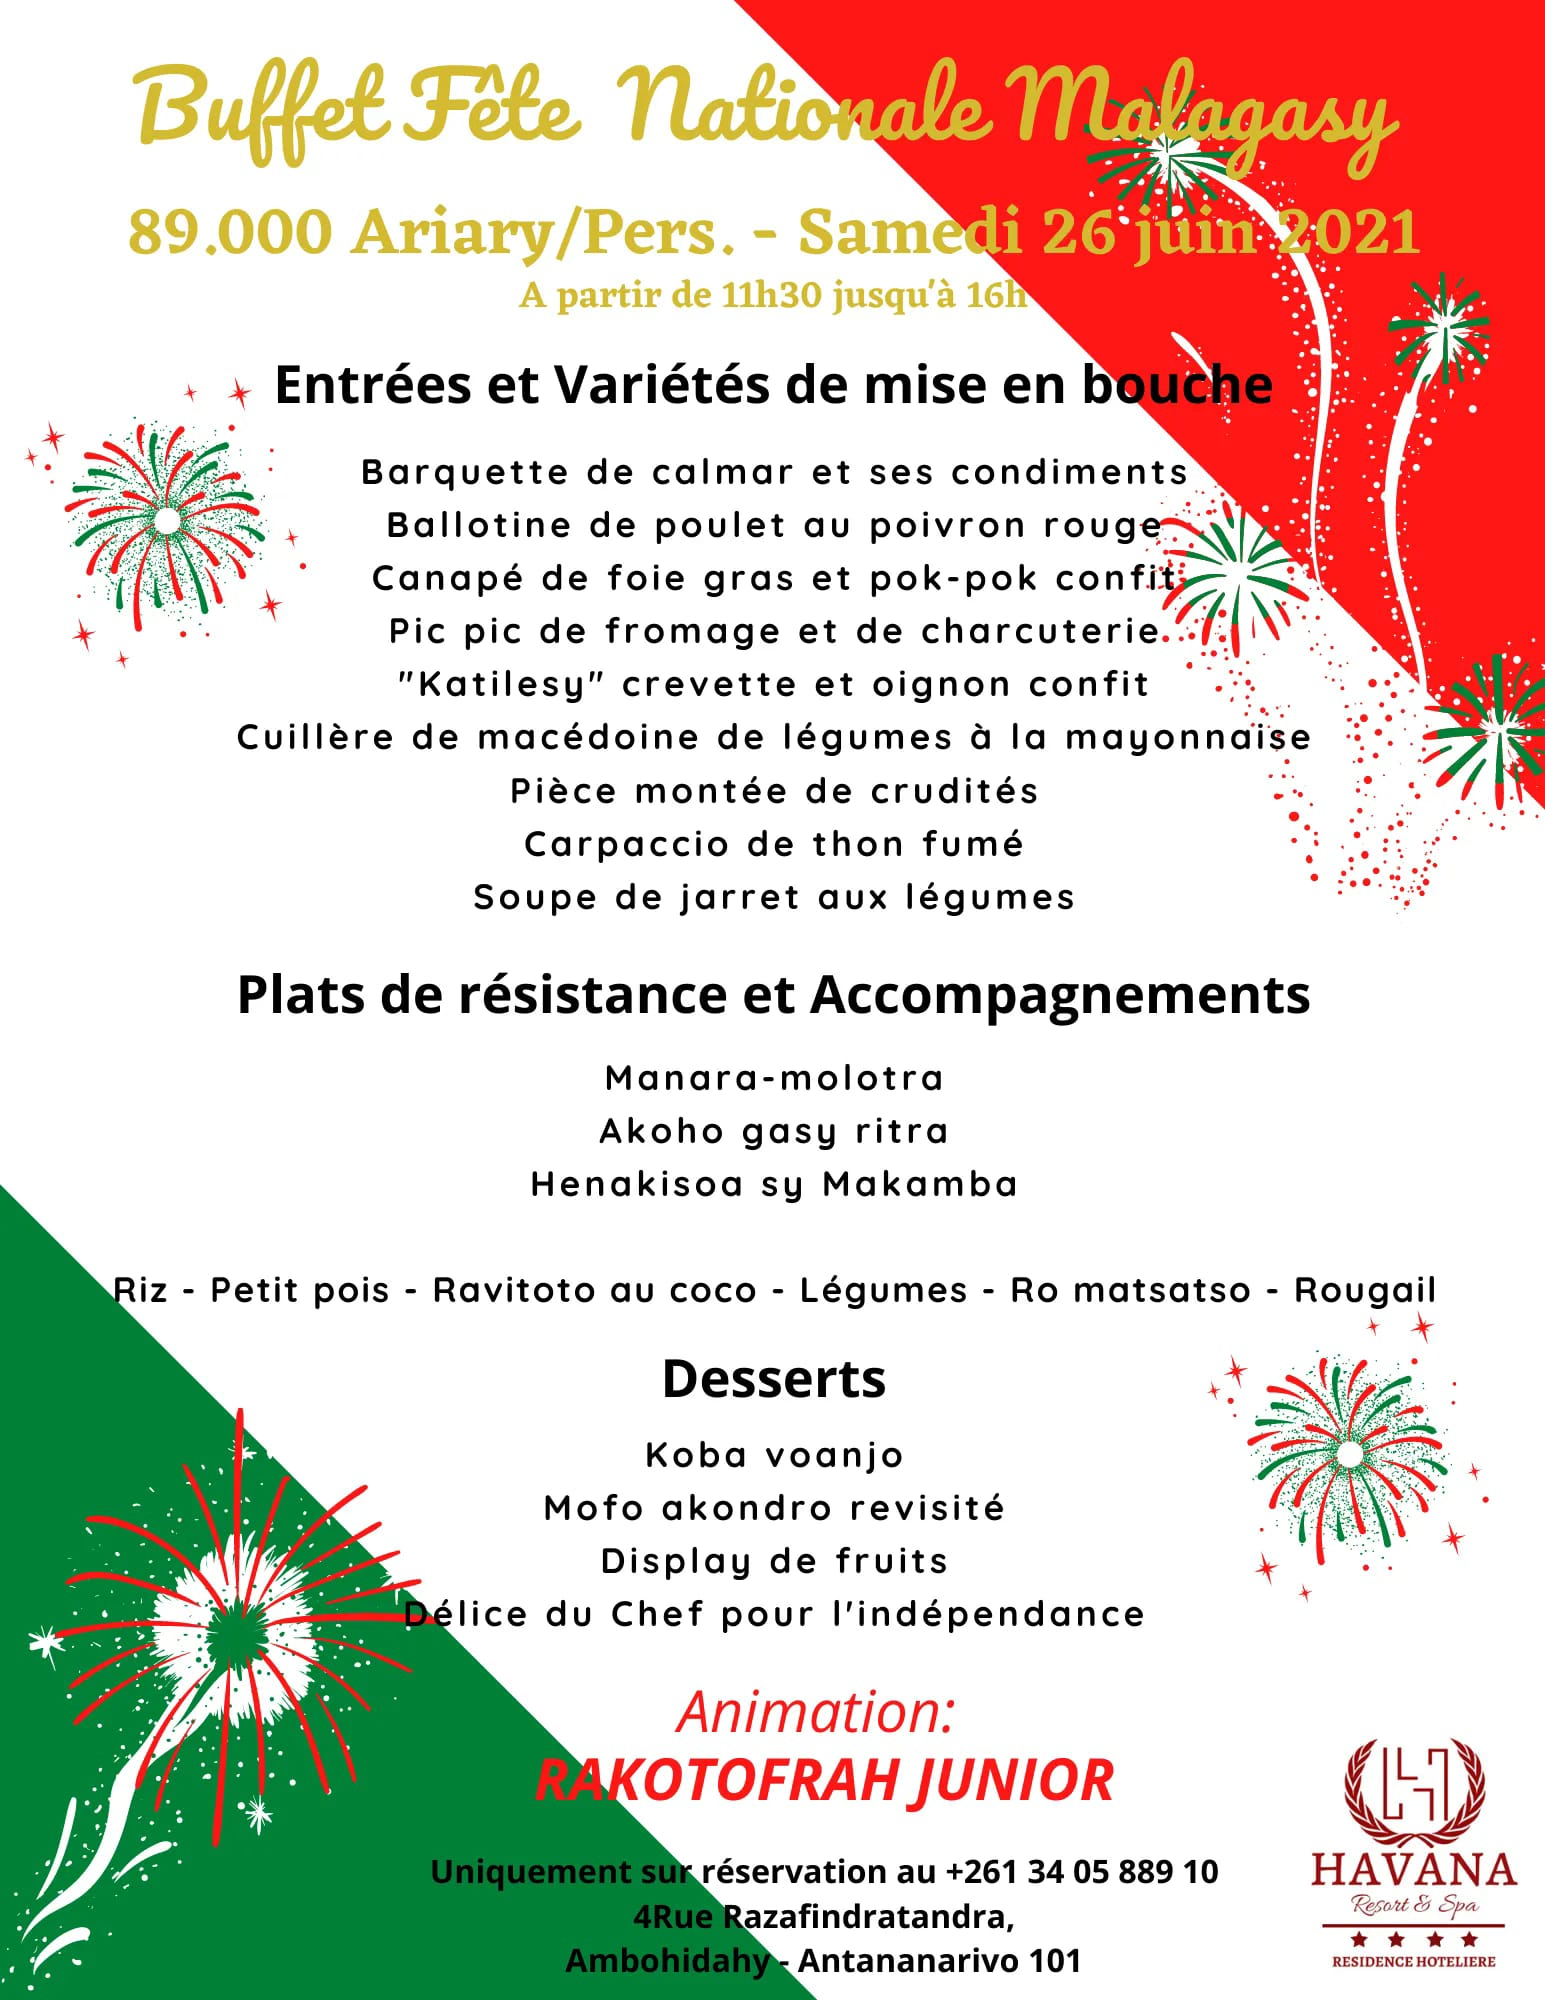 🇲🇬‼️ Fête Nationale Malagasy ‼️🇲🇬